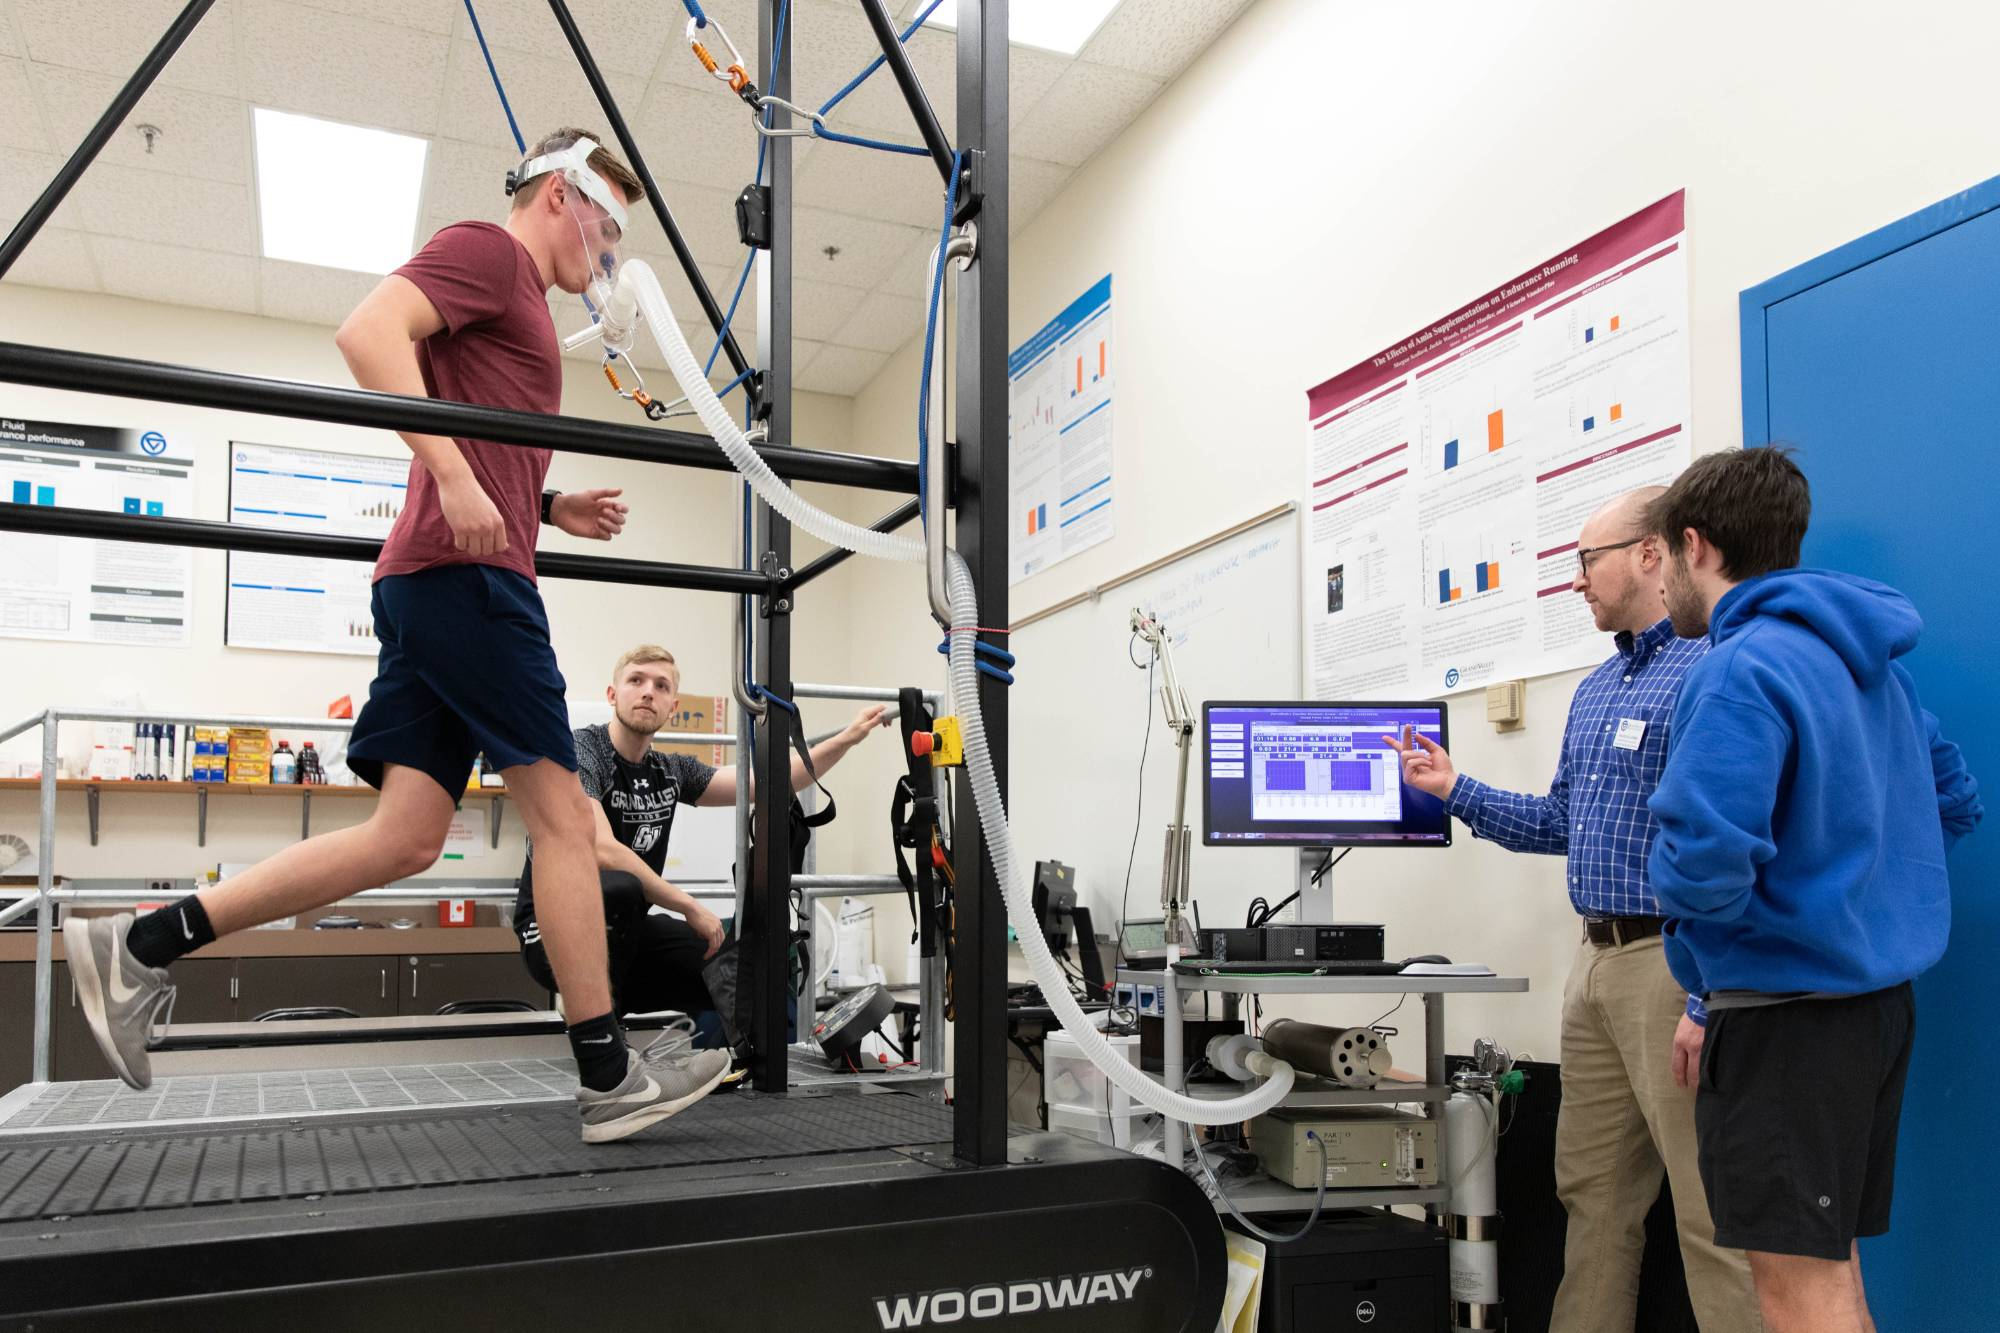 VO2max testing instruction